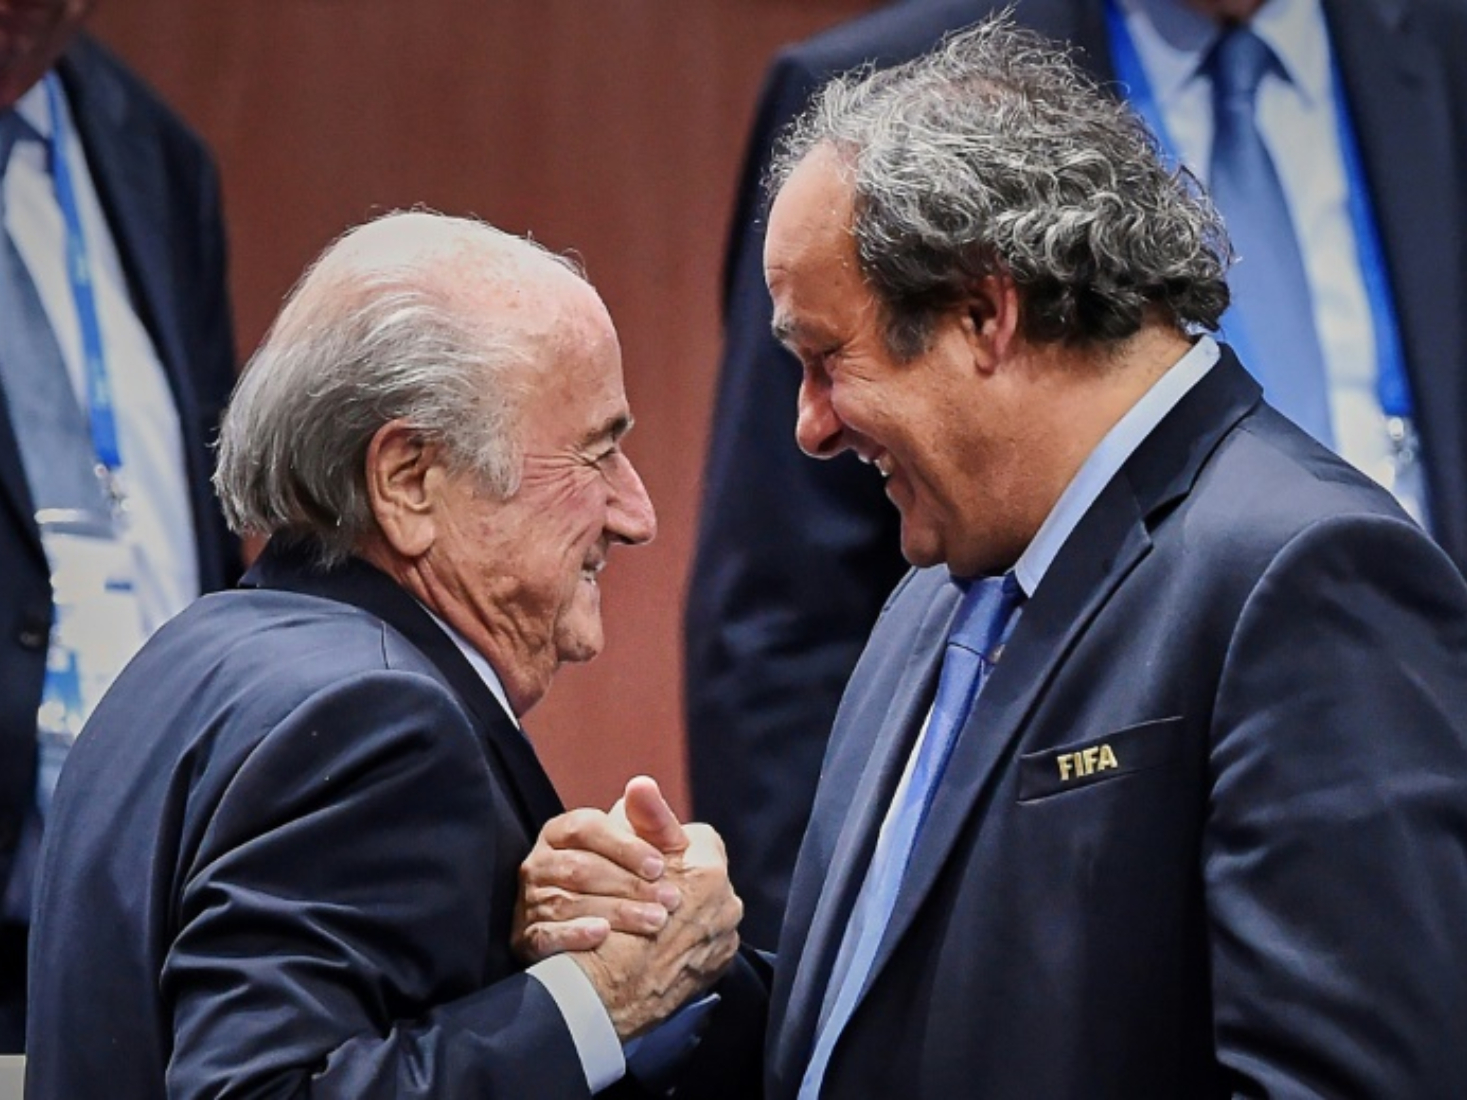 FIFA files court claims to retrieve $2 mln from Platini